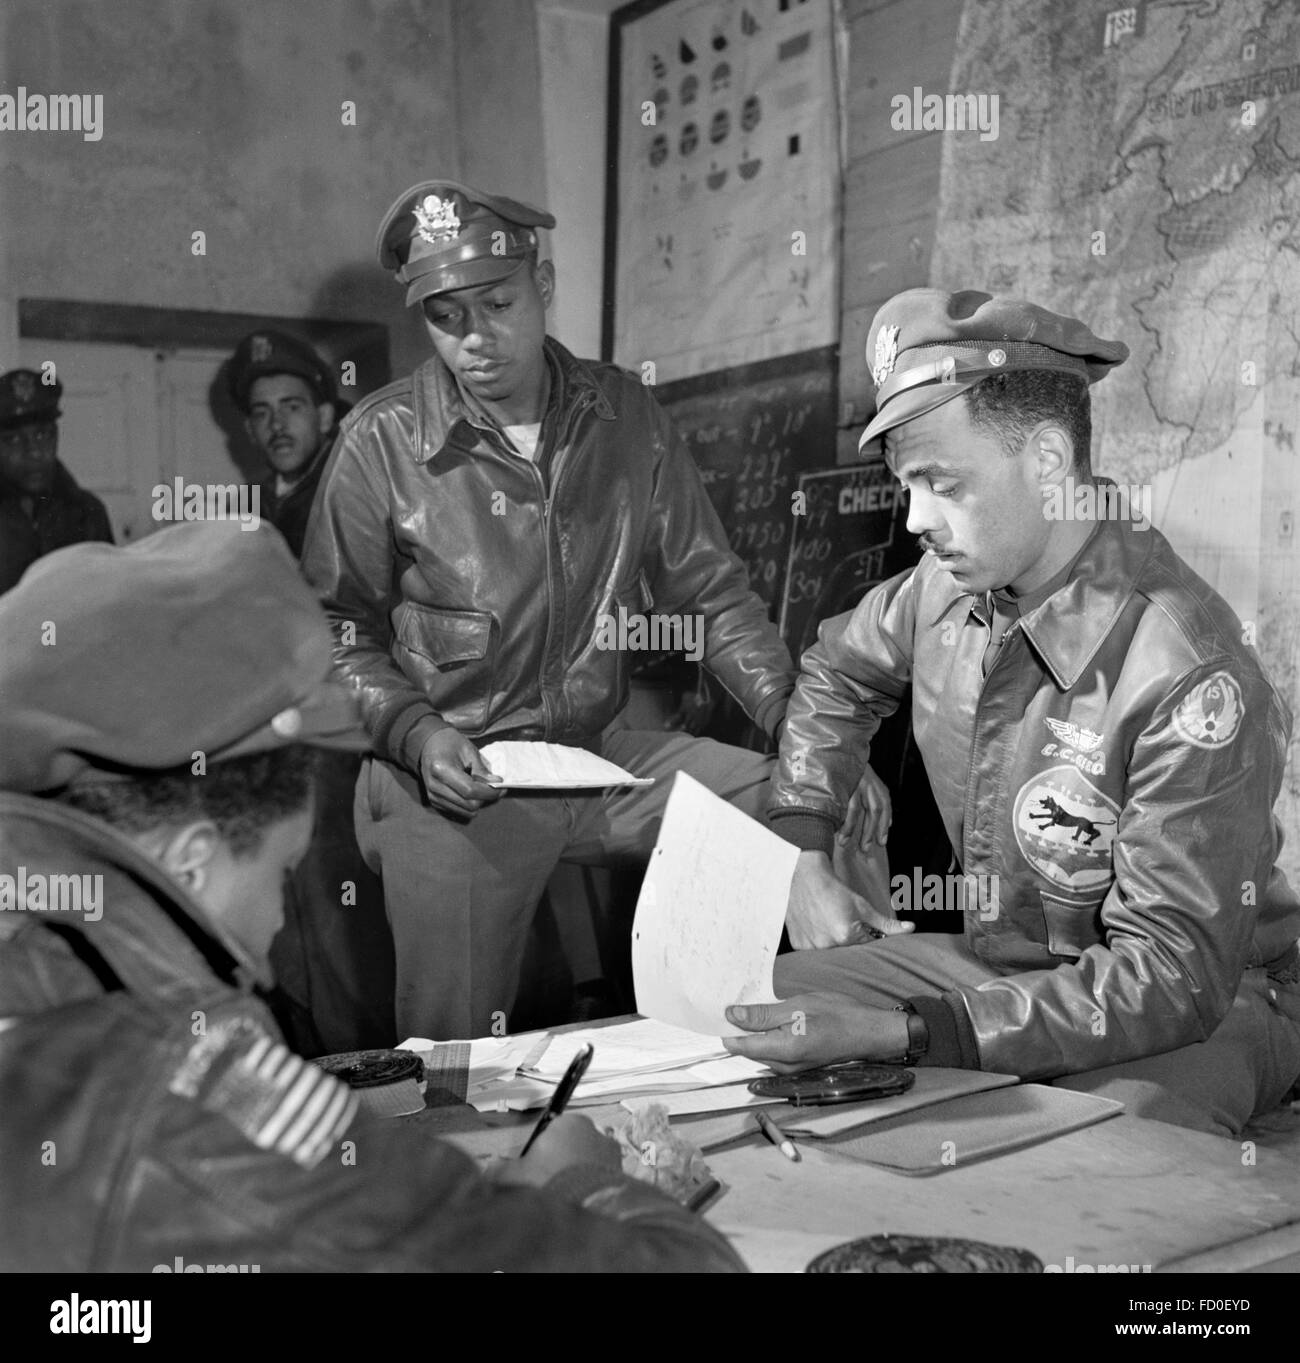 Tuskegee airmen from the 332nd Fighter Group in Ramitelli, Italy in March 1945. - Stock Image